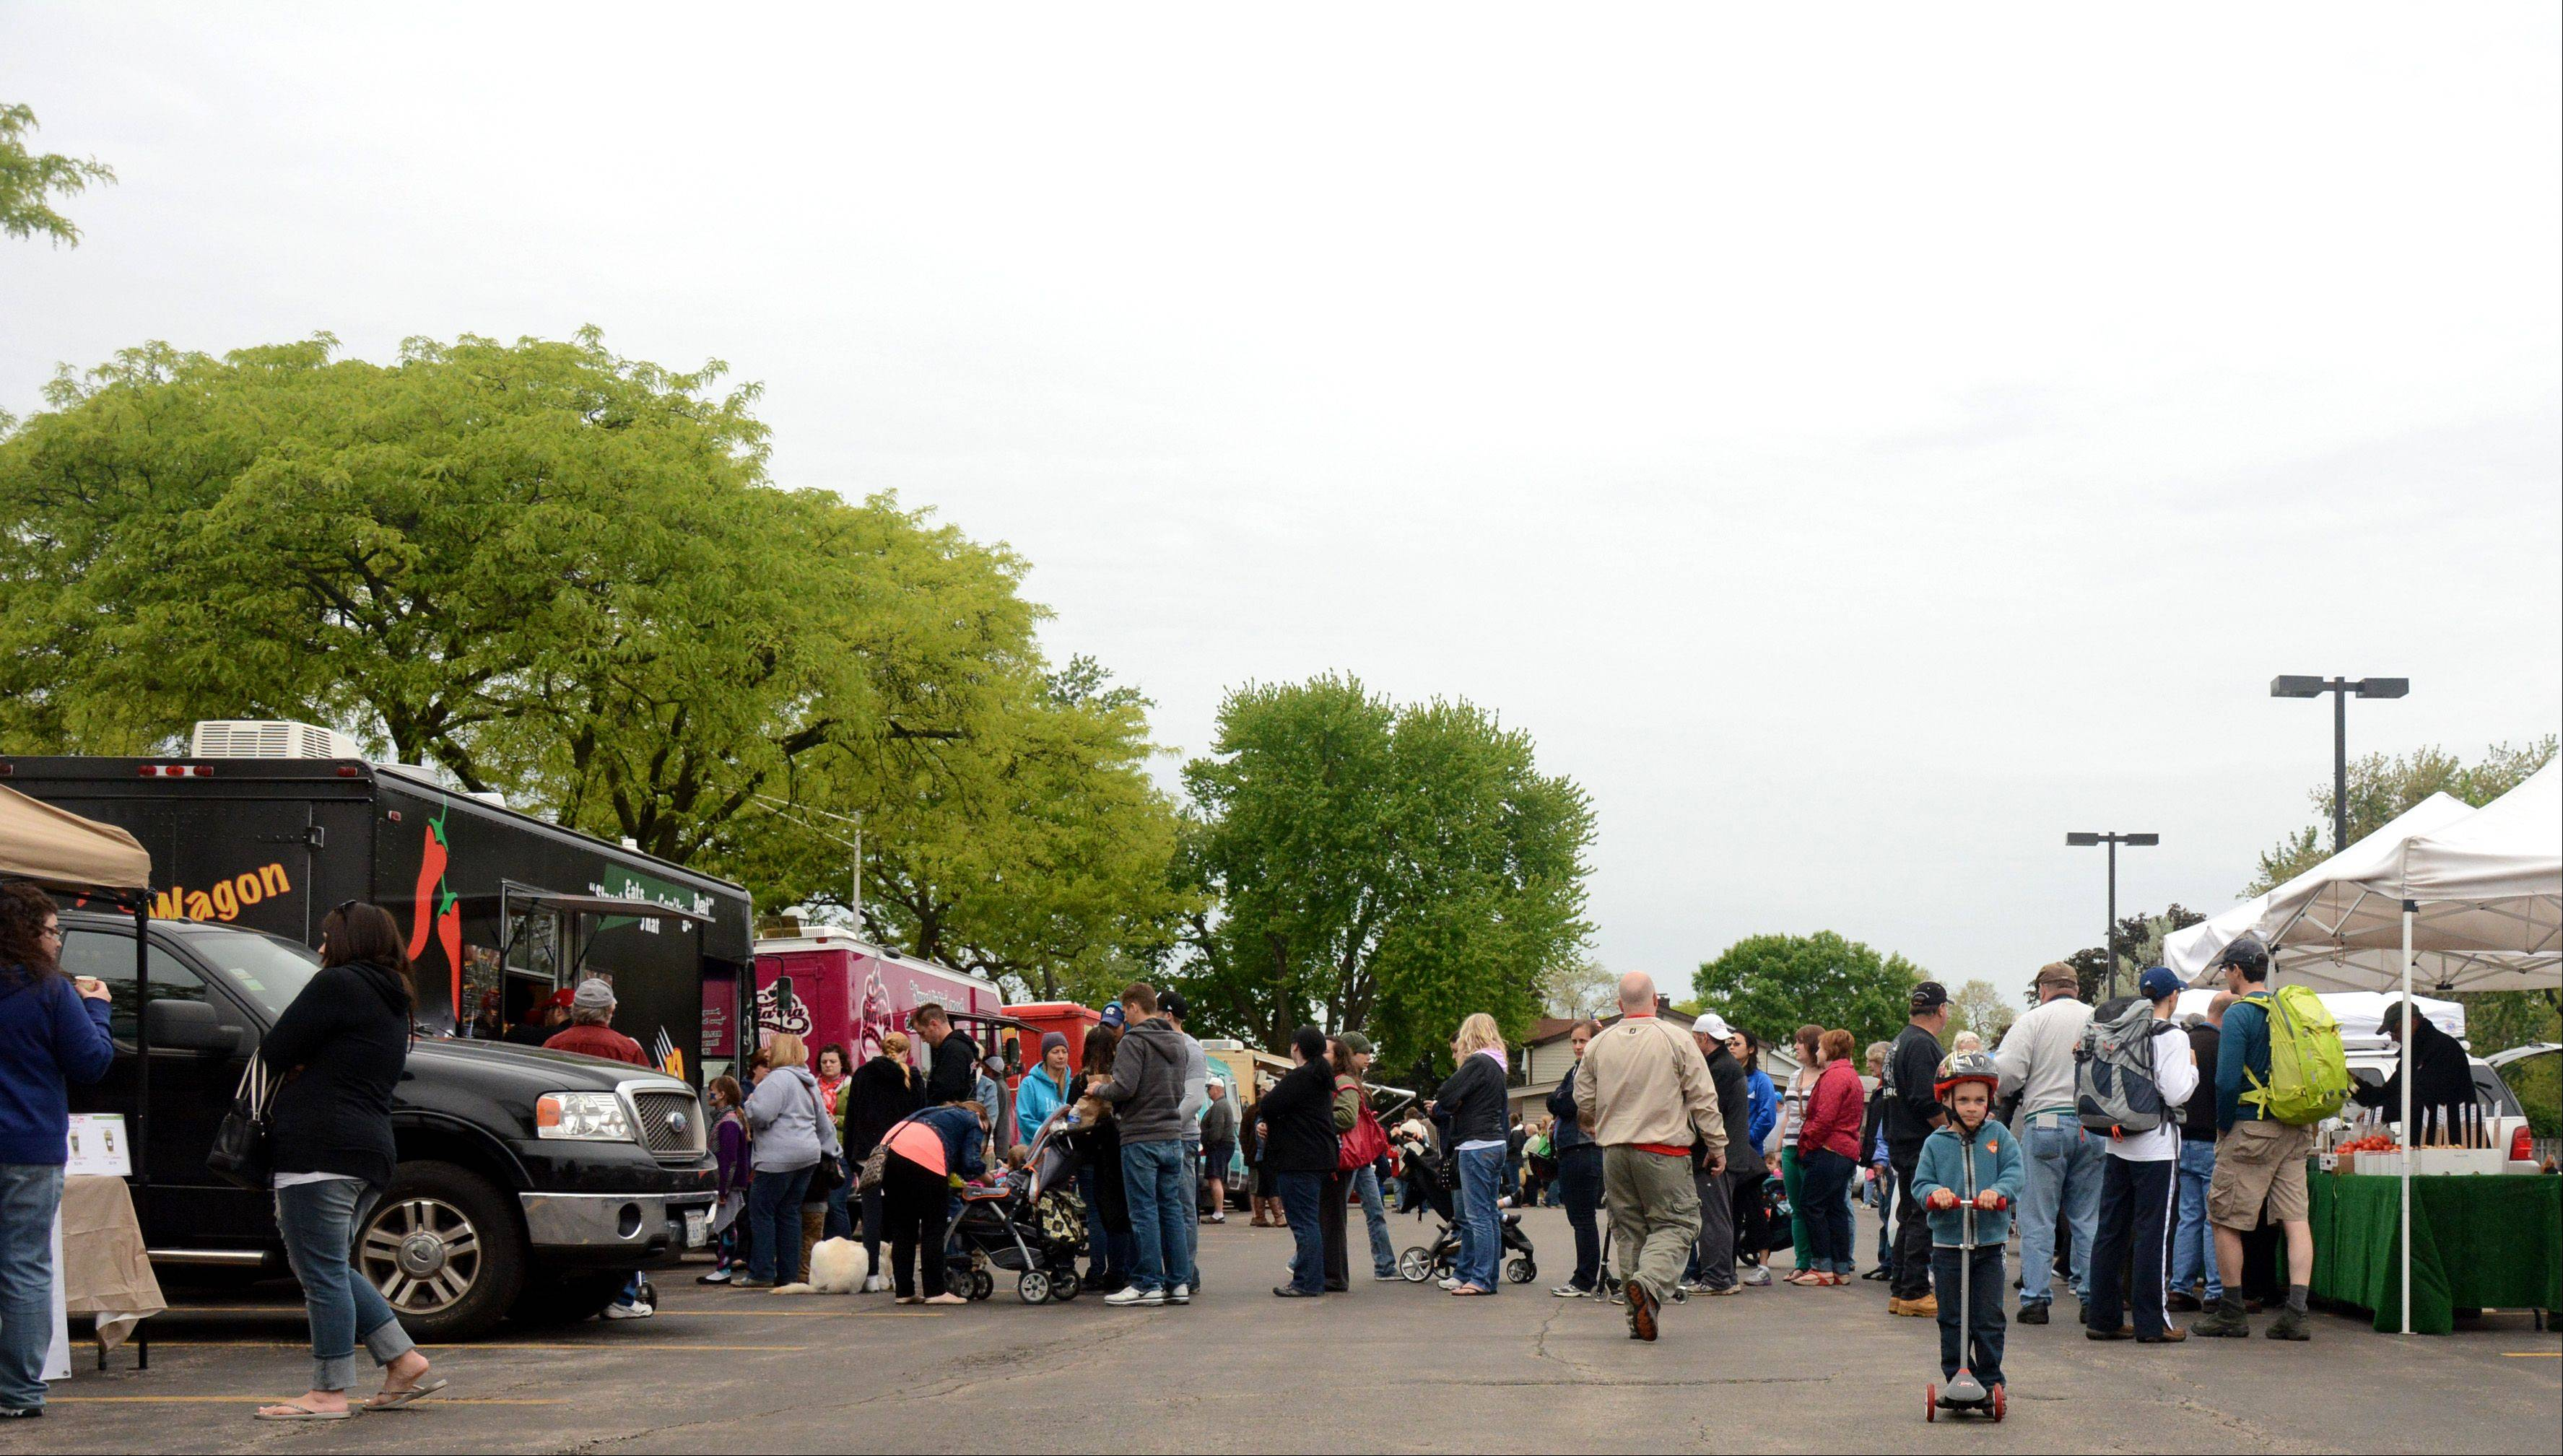 Rolling Meadows plans a monthly Farmers Market/Food Truck event this summer and fall.